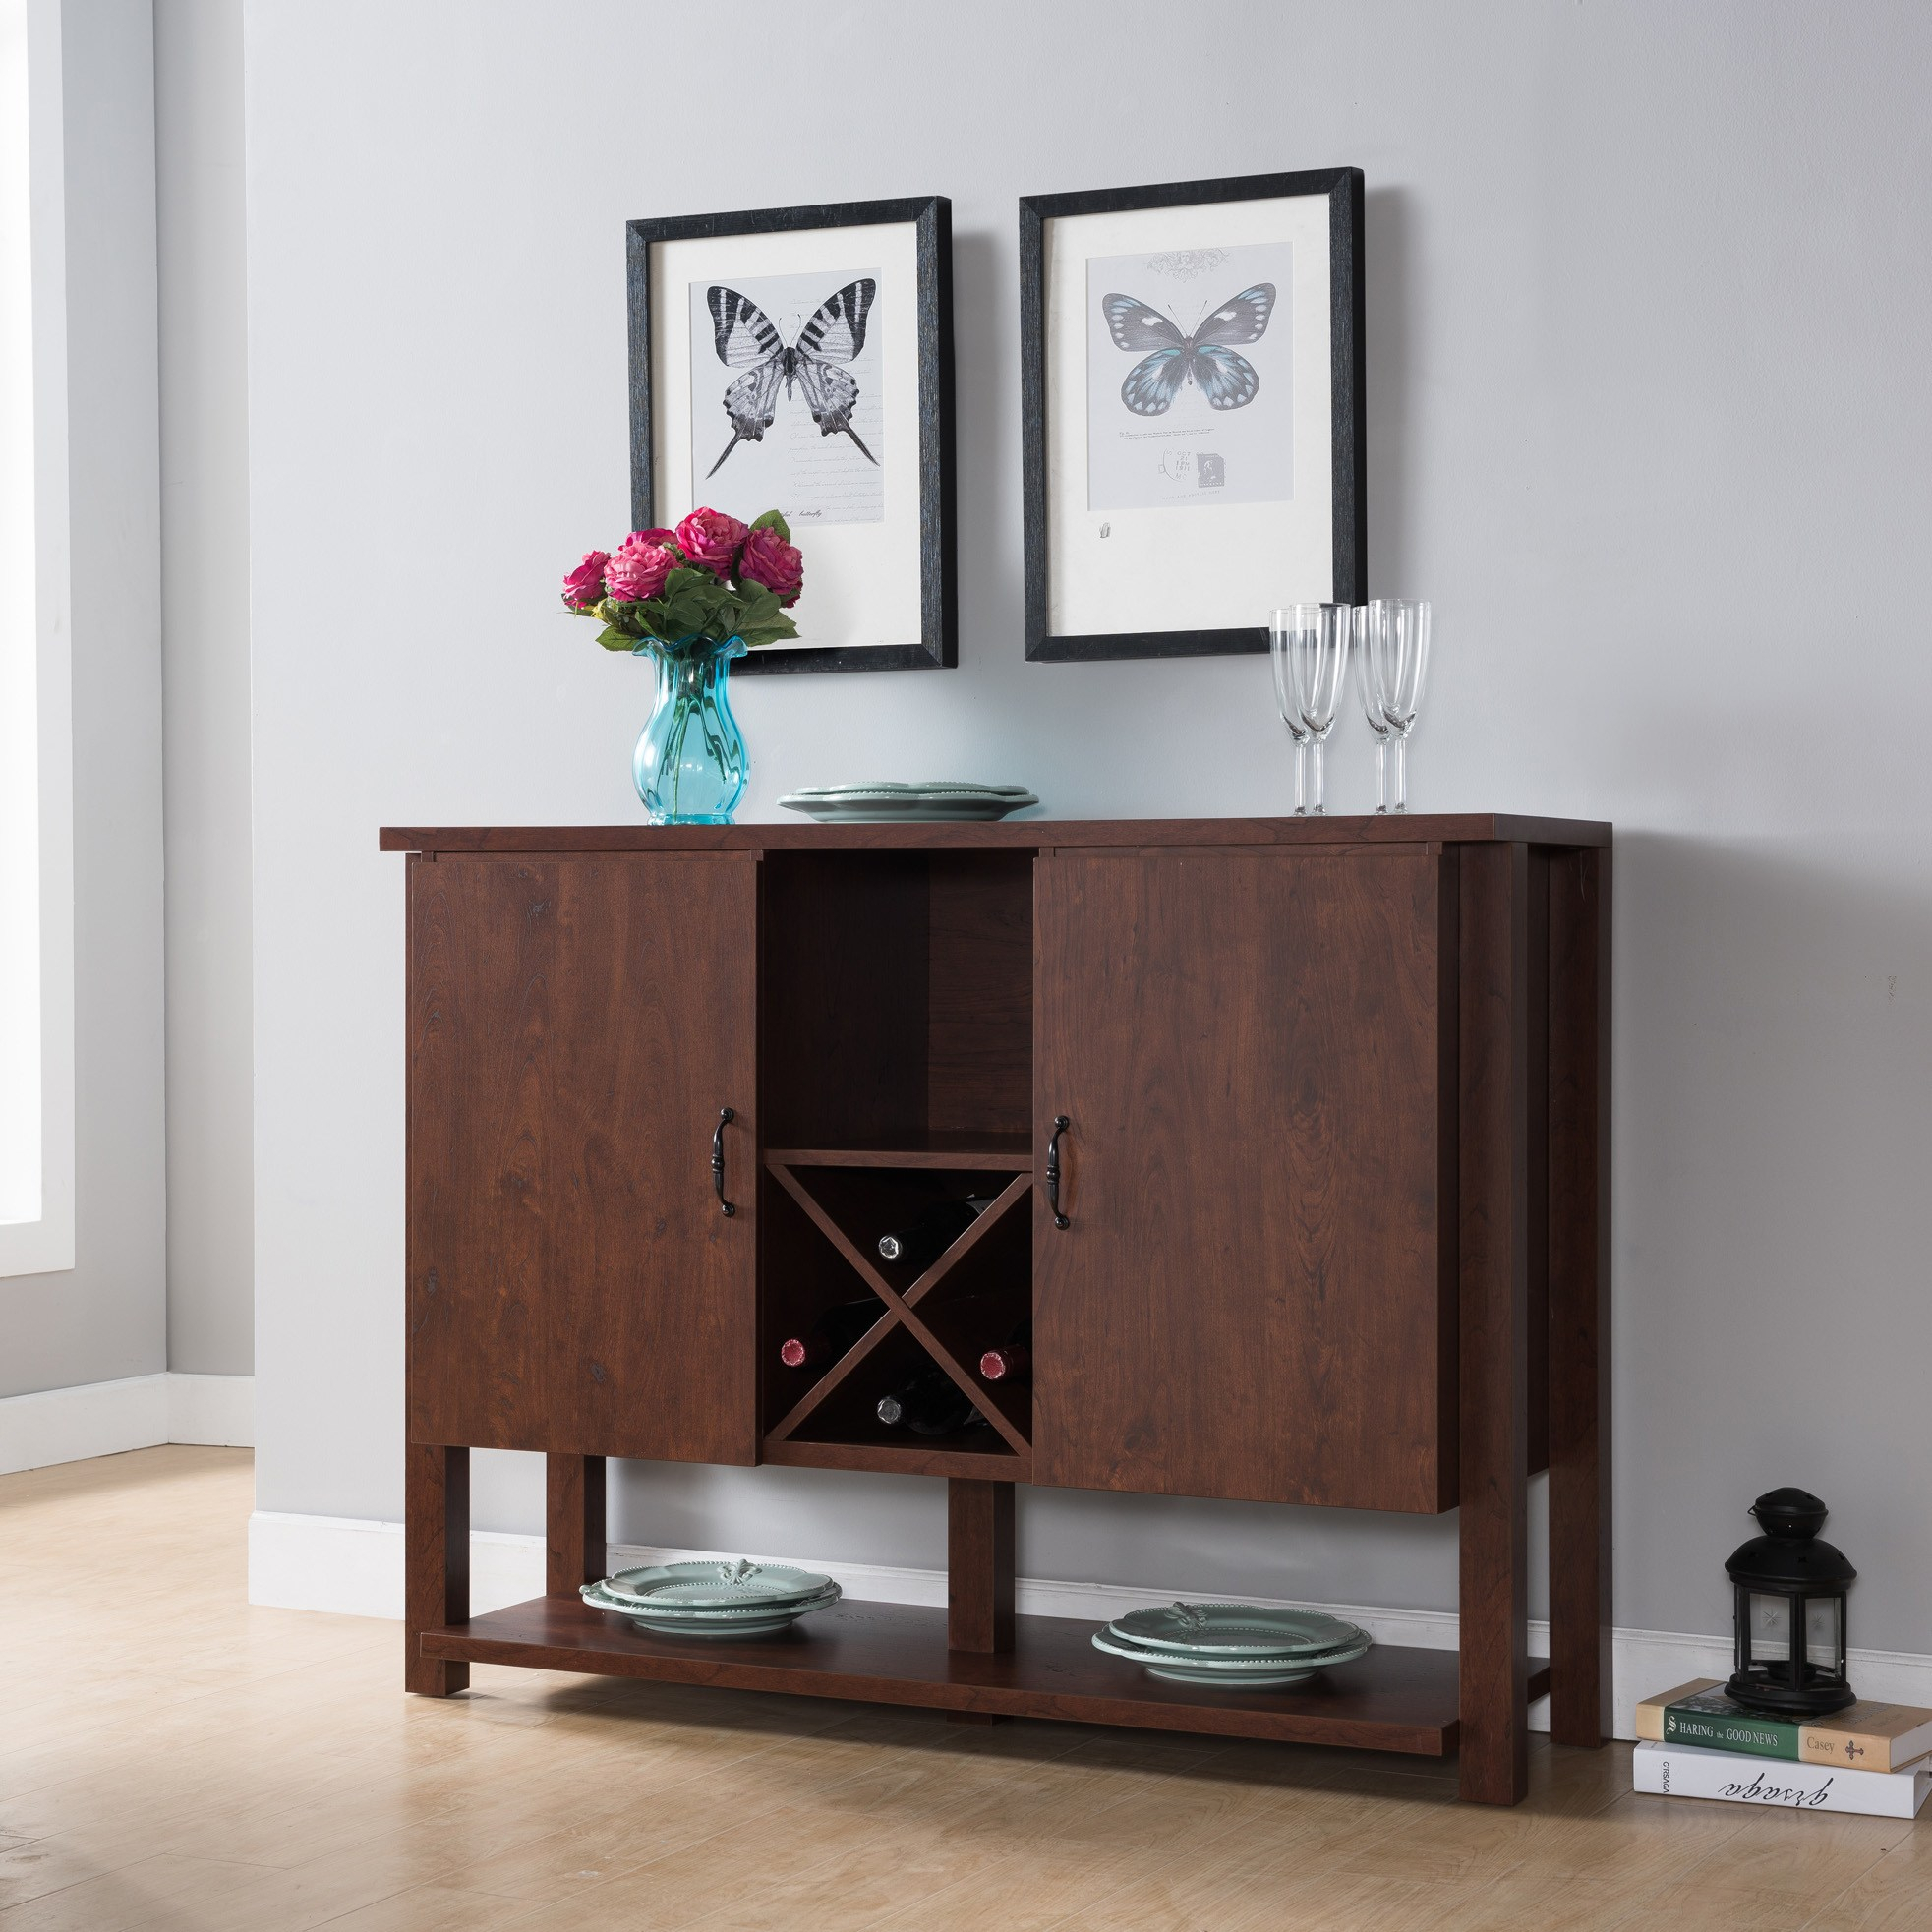 Furniture Of America Michaelson Rustic Walnut Dining Server - N/a inside Rustic Walnut Dining Buffets (Image 15 of 30)